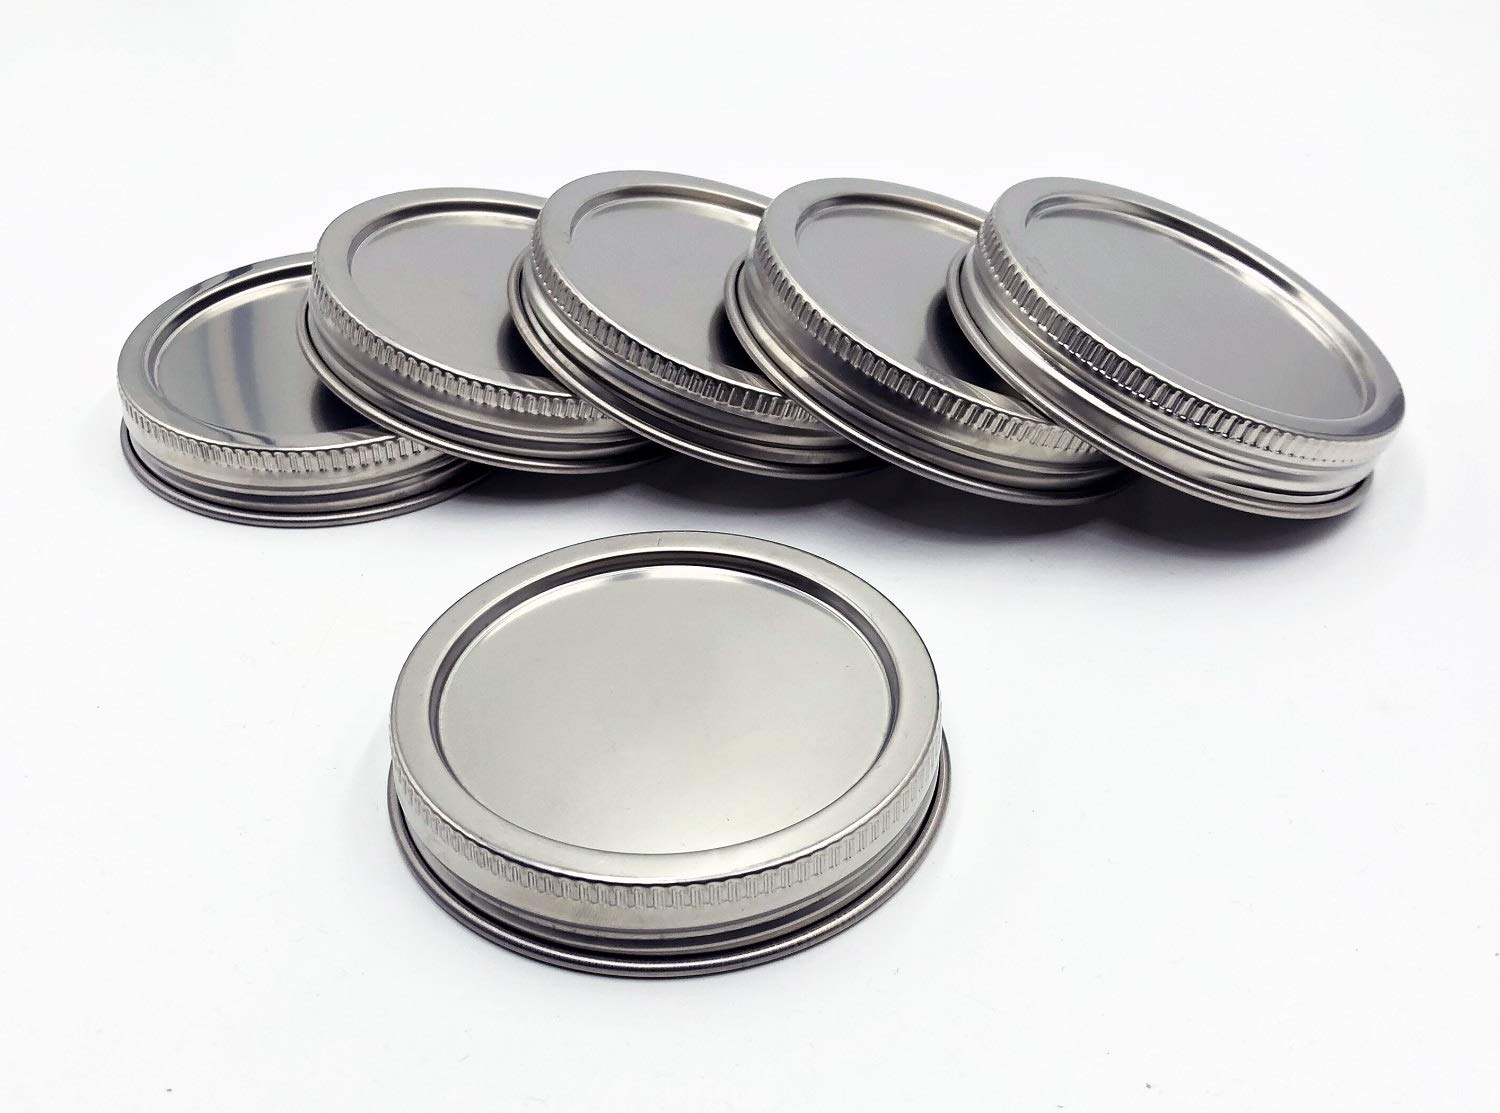 THINKCHANCES Food Grade BPA Free Rust Resistant Heavy Duty Stainless Steel Transformer Ball Mason Jar Lids Canning Caps with Leak Proof Airtight Silicone Seal (Wide Mouth, 6 Pack)